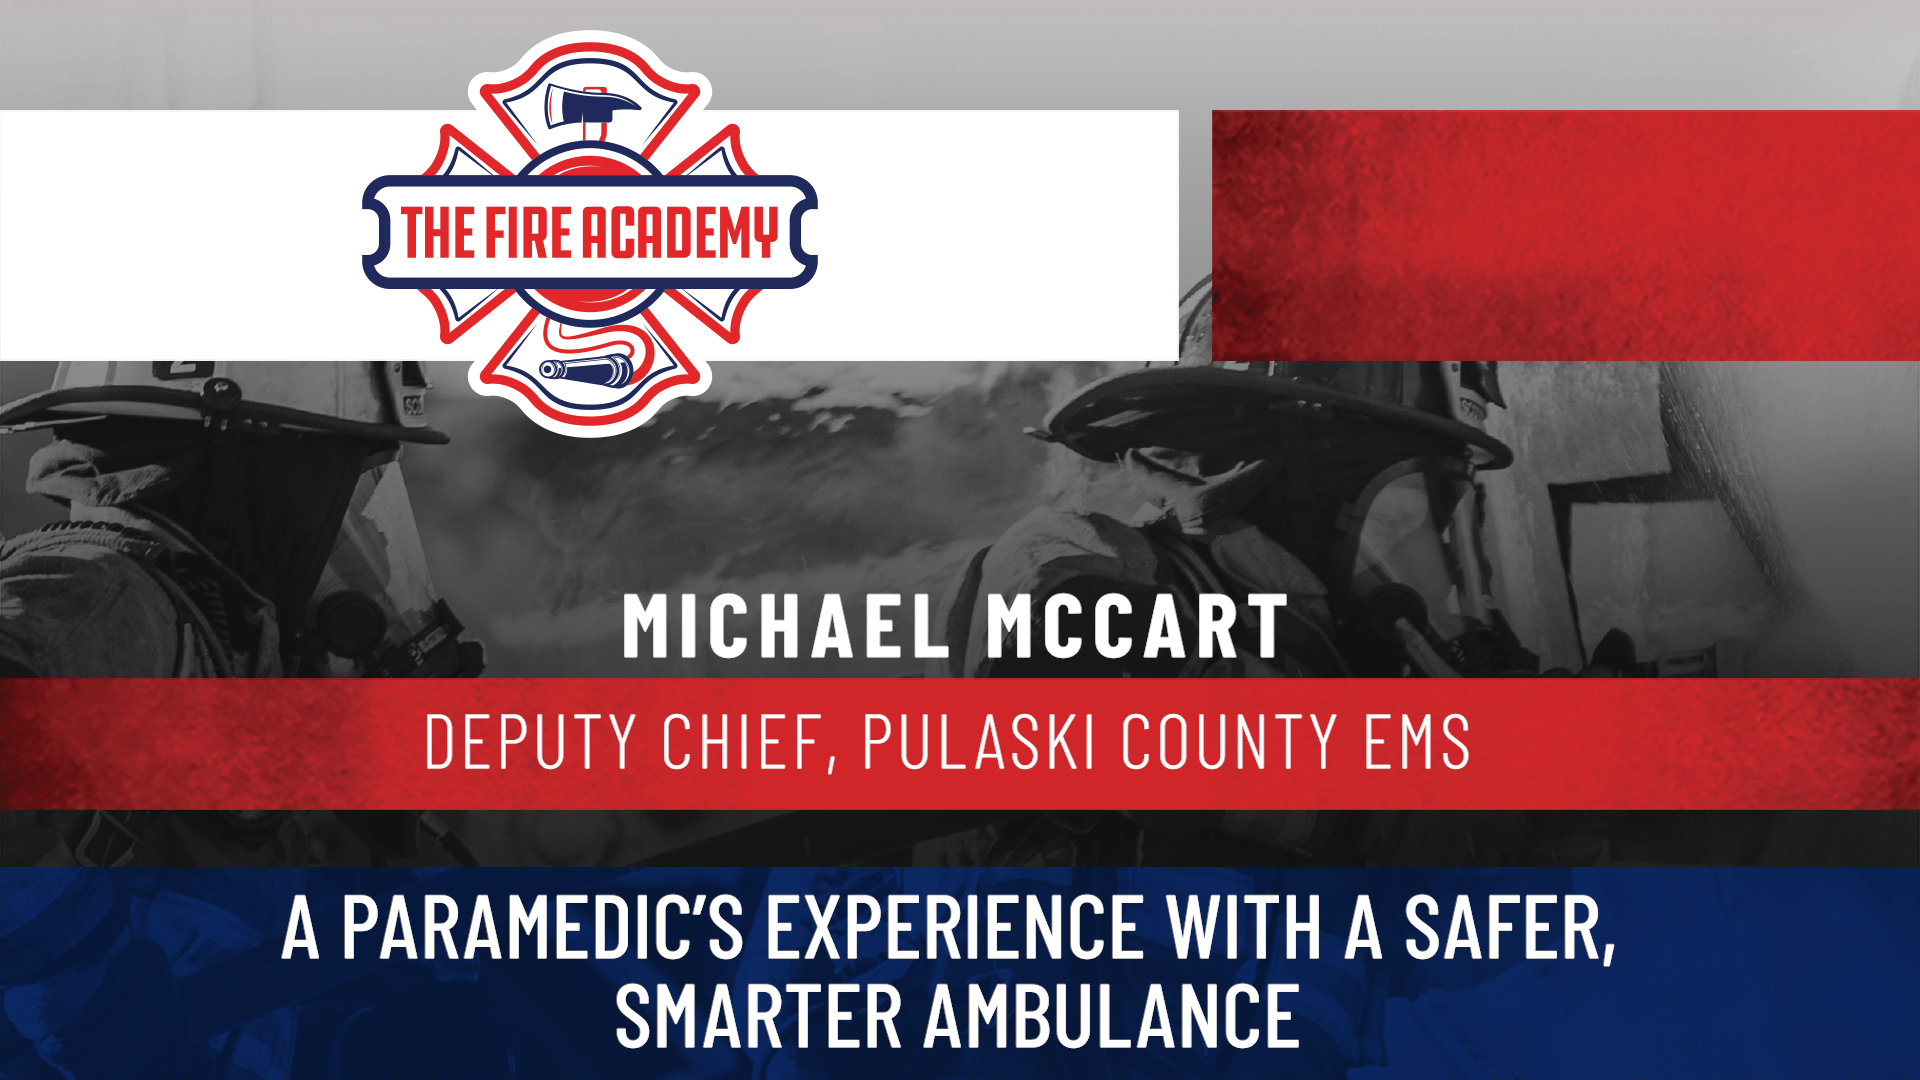 A Paramedic's Experience with a Safer, Smarter Ambulance